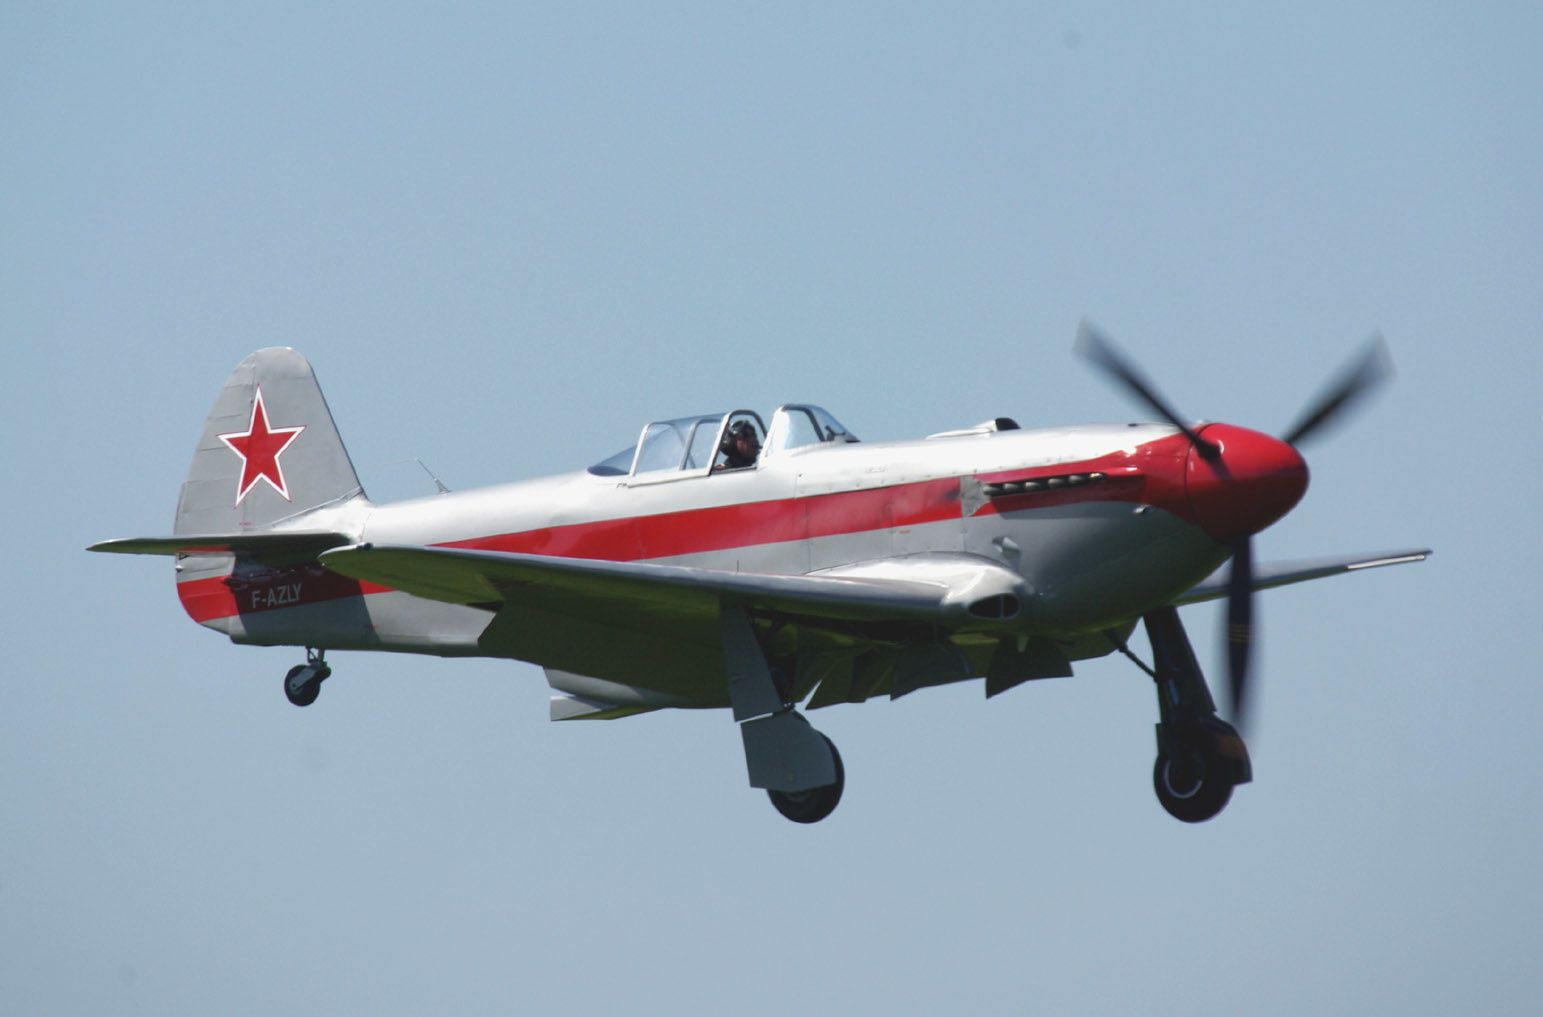 Le Yak 3 F-AZLY